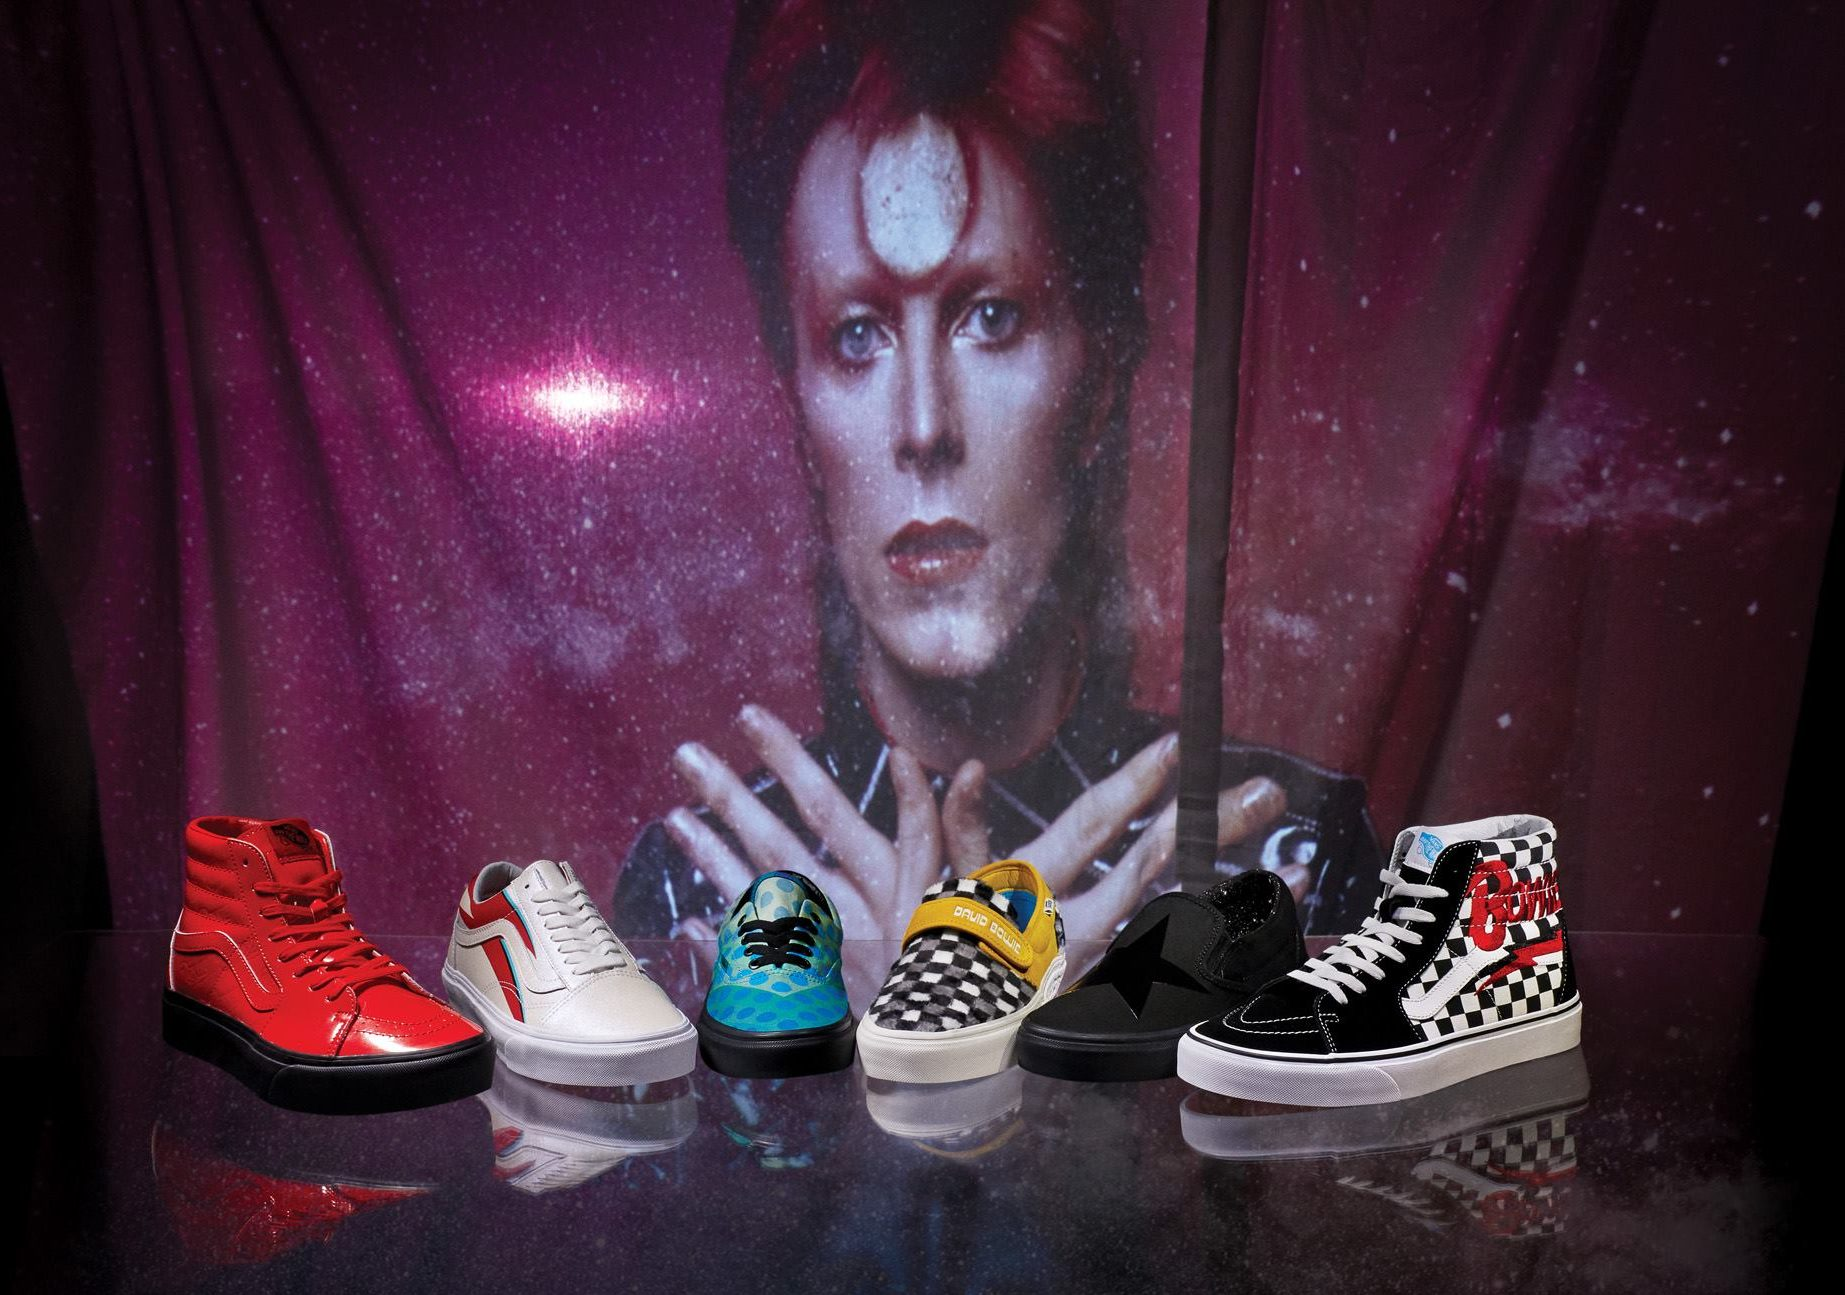 e8f38f5176 Vans x David Bowie Collection  Where to Buy Online – Rolling Stone